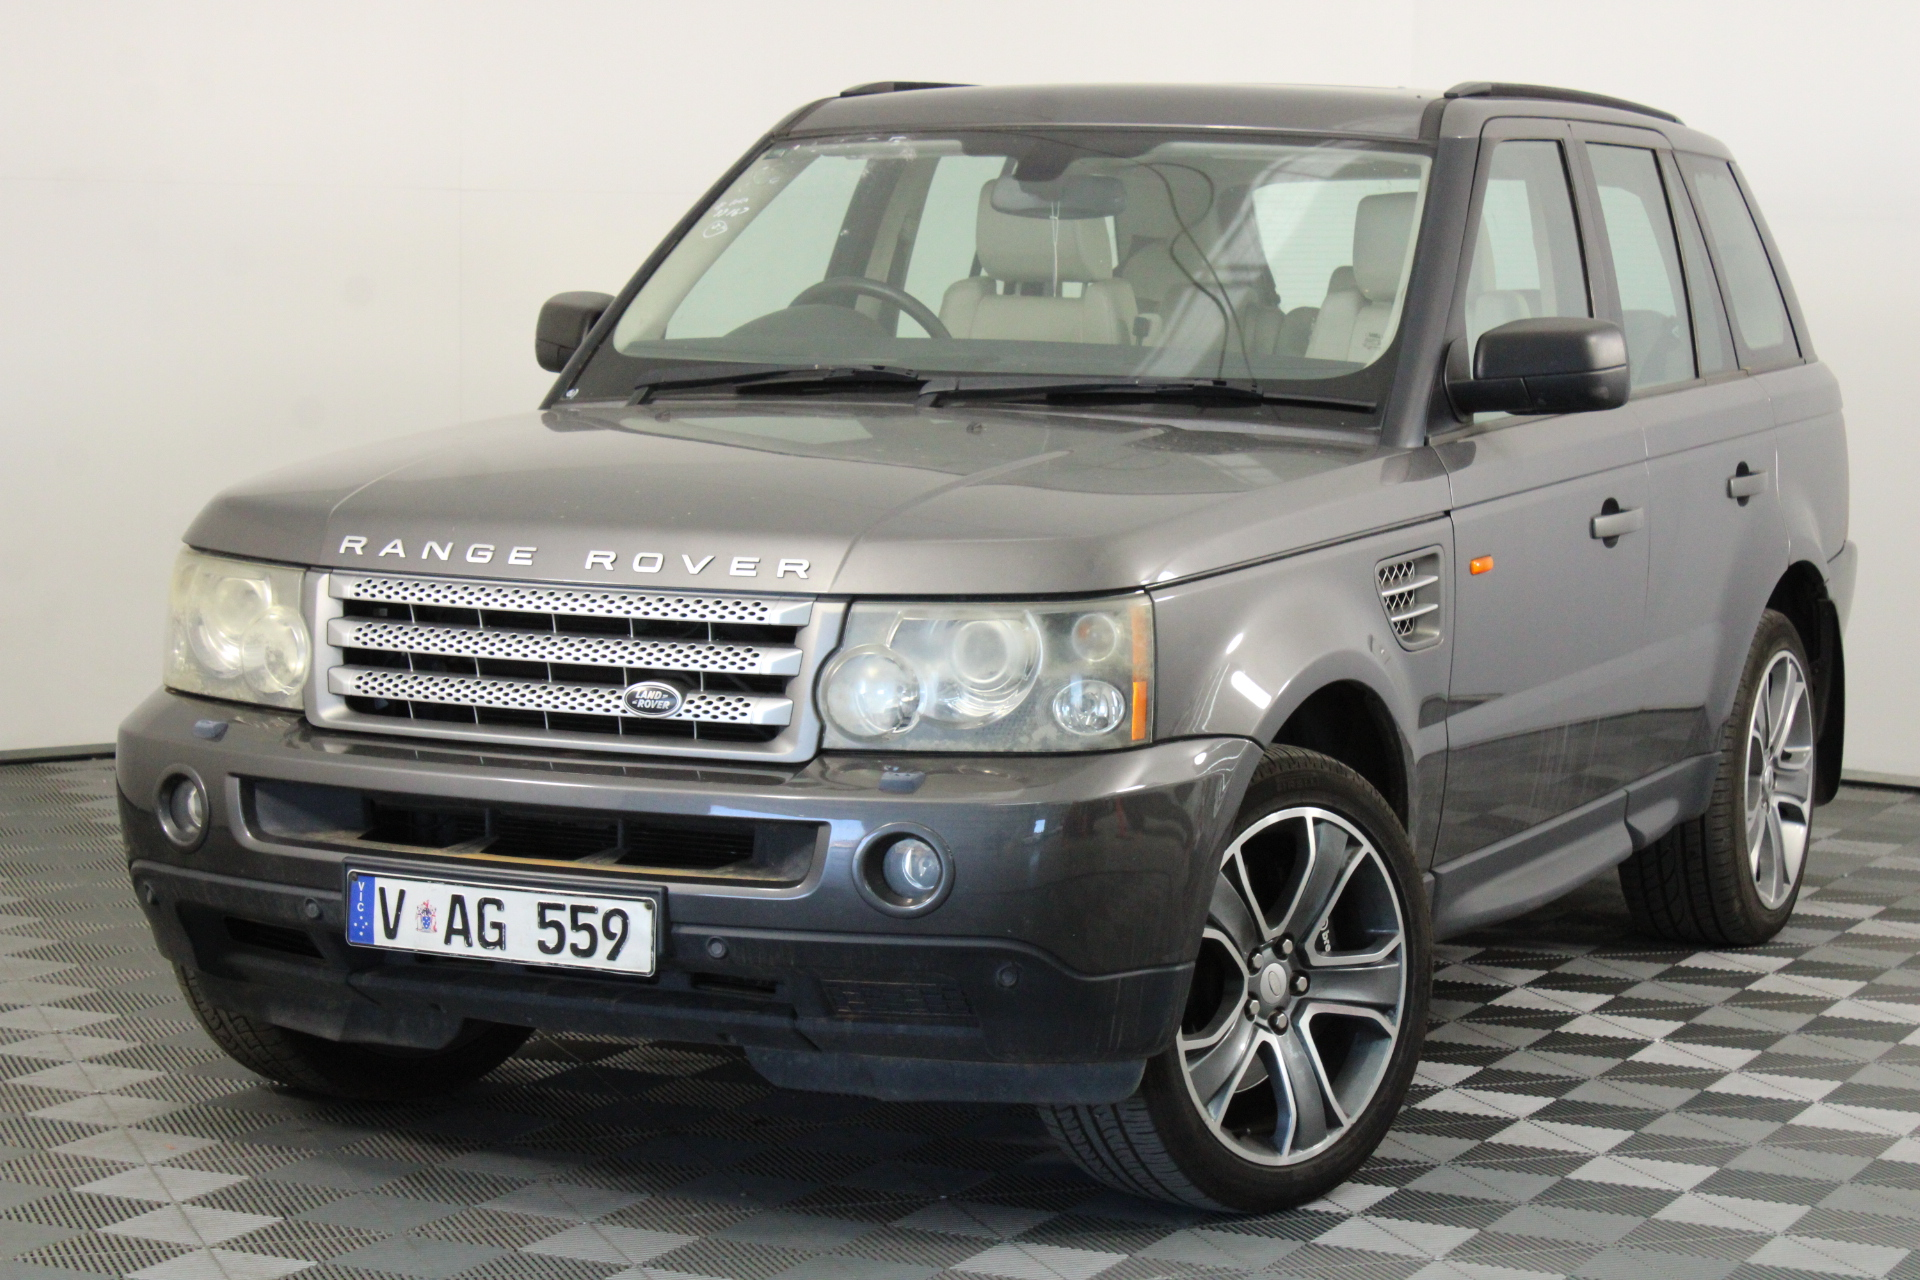 2005 Land Rover Range Rover Sport Automatic Wagon